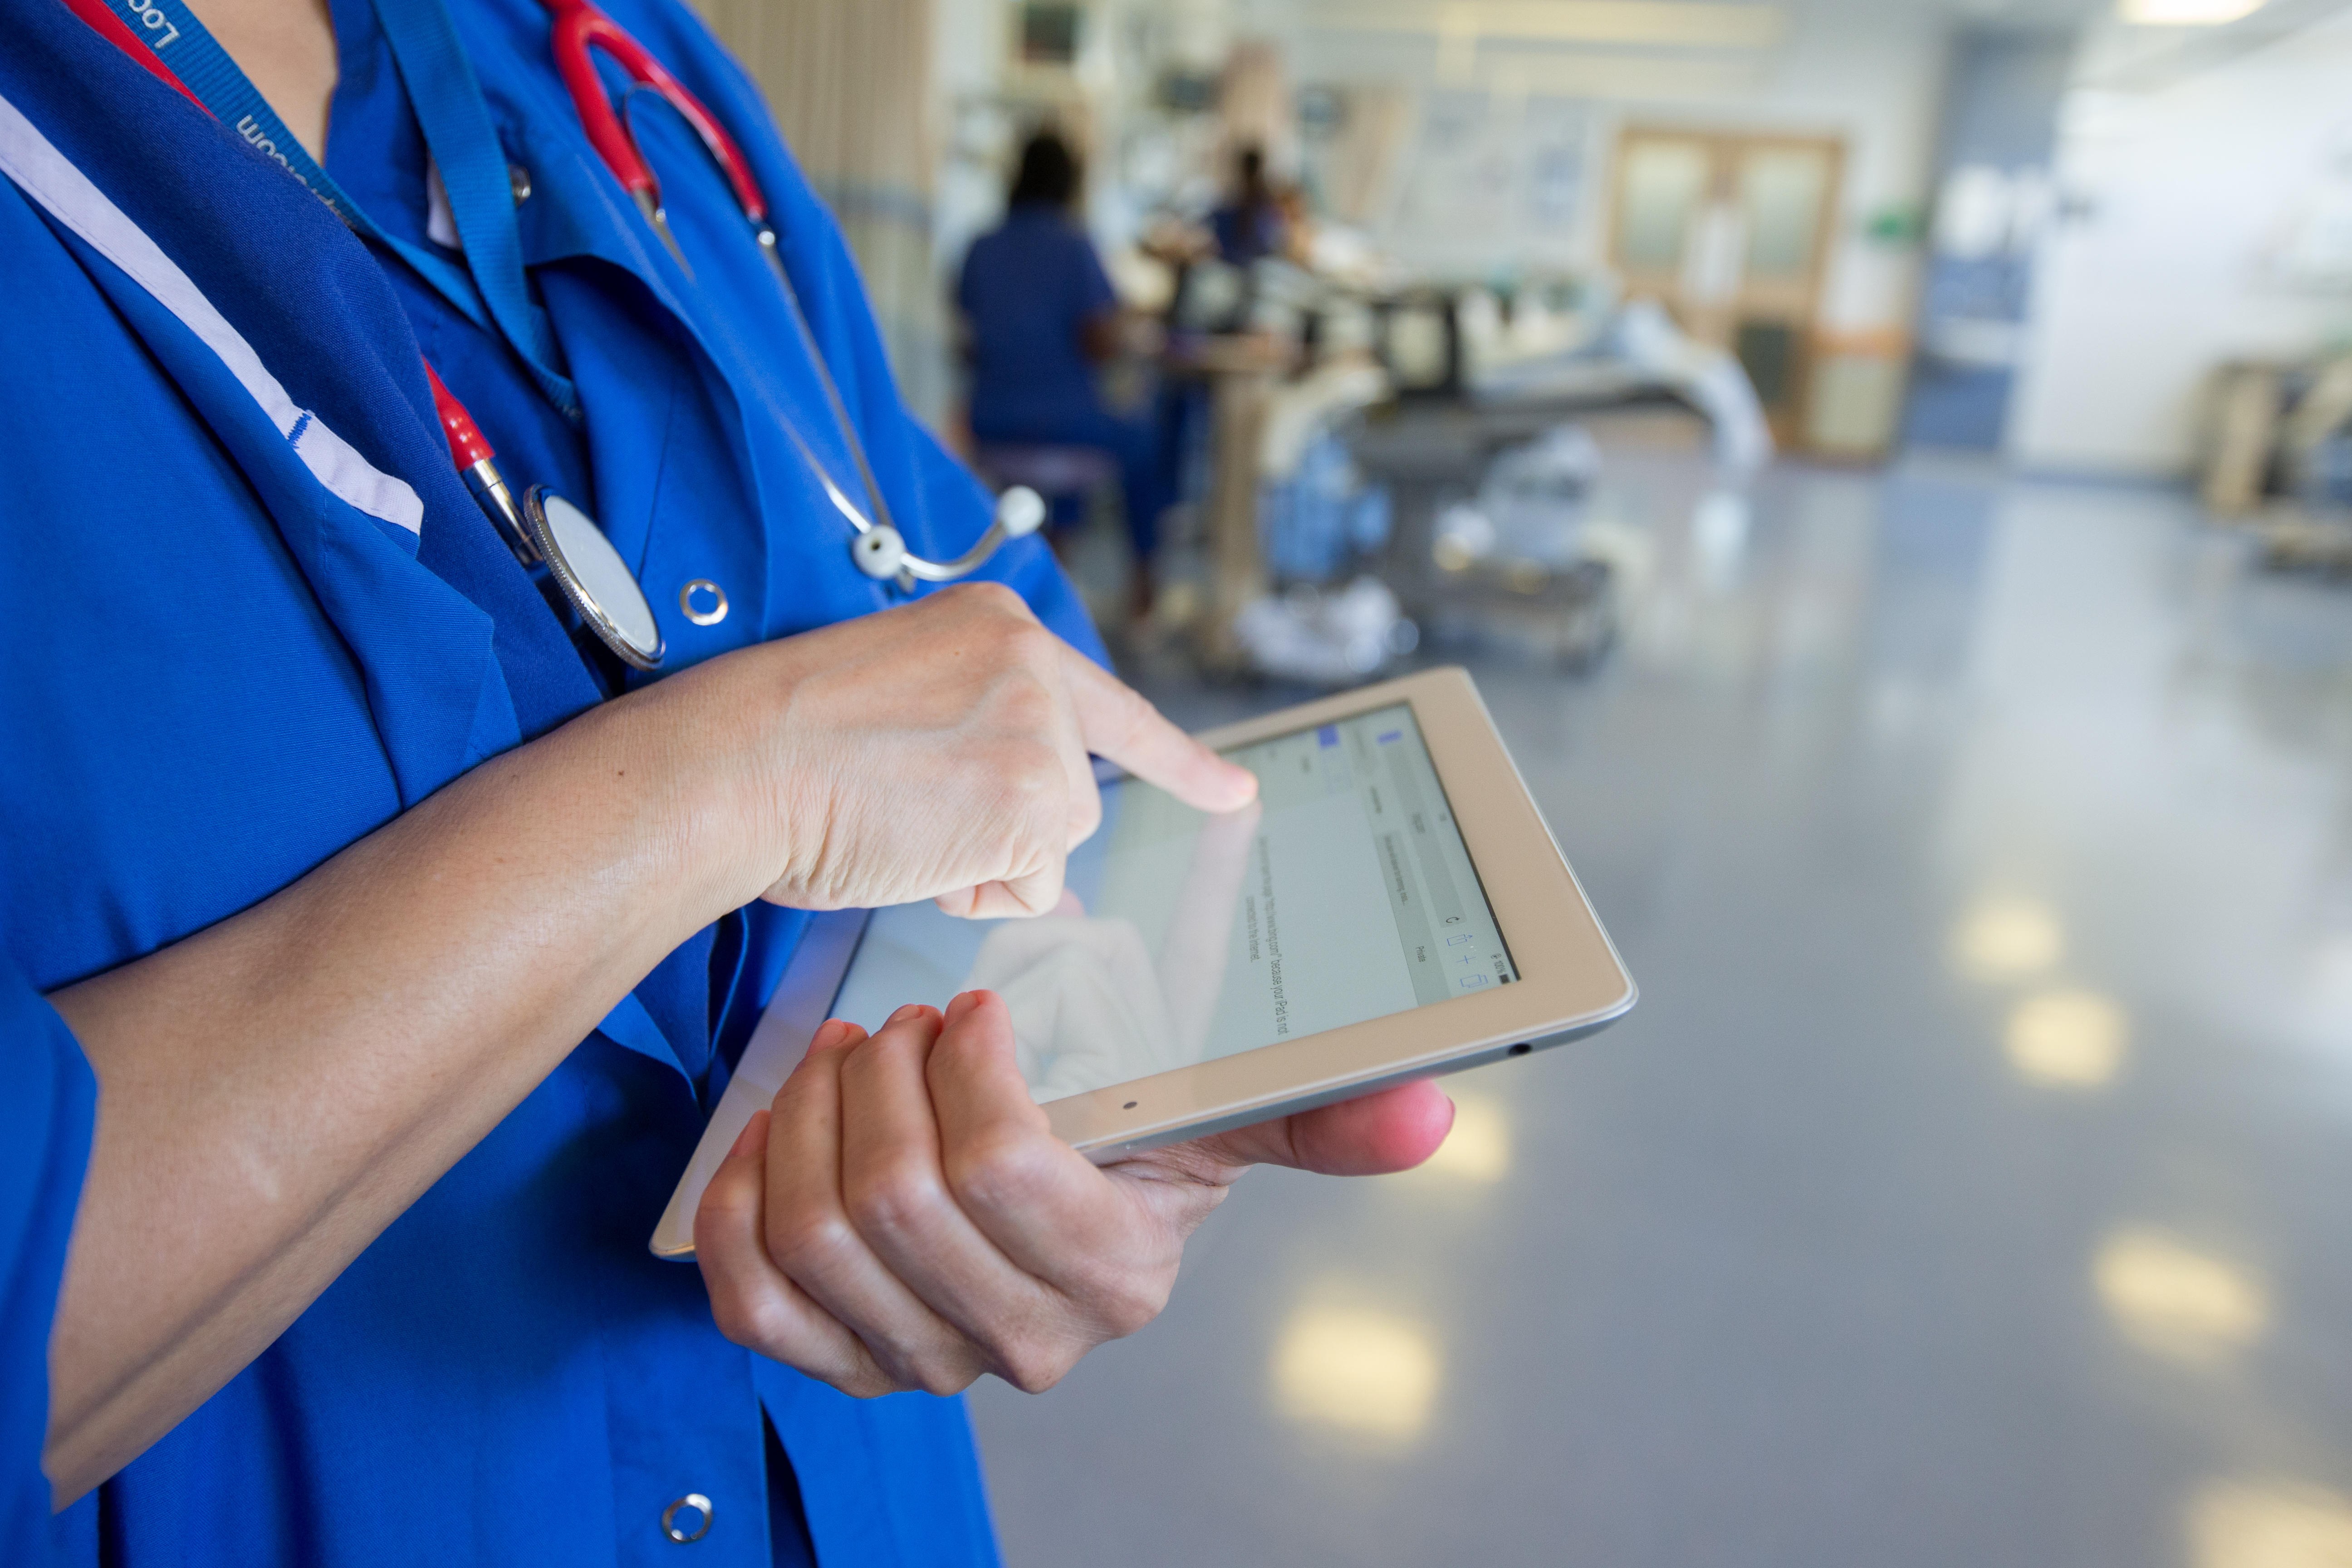 Closeup of a medical professional working on a tablet